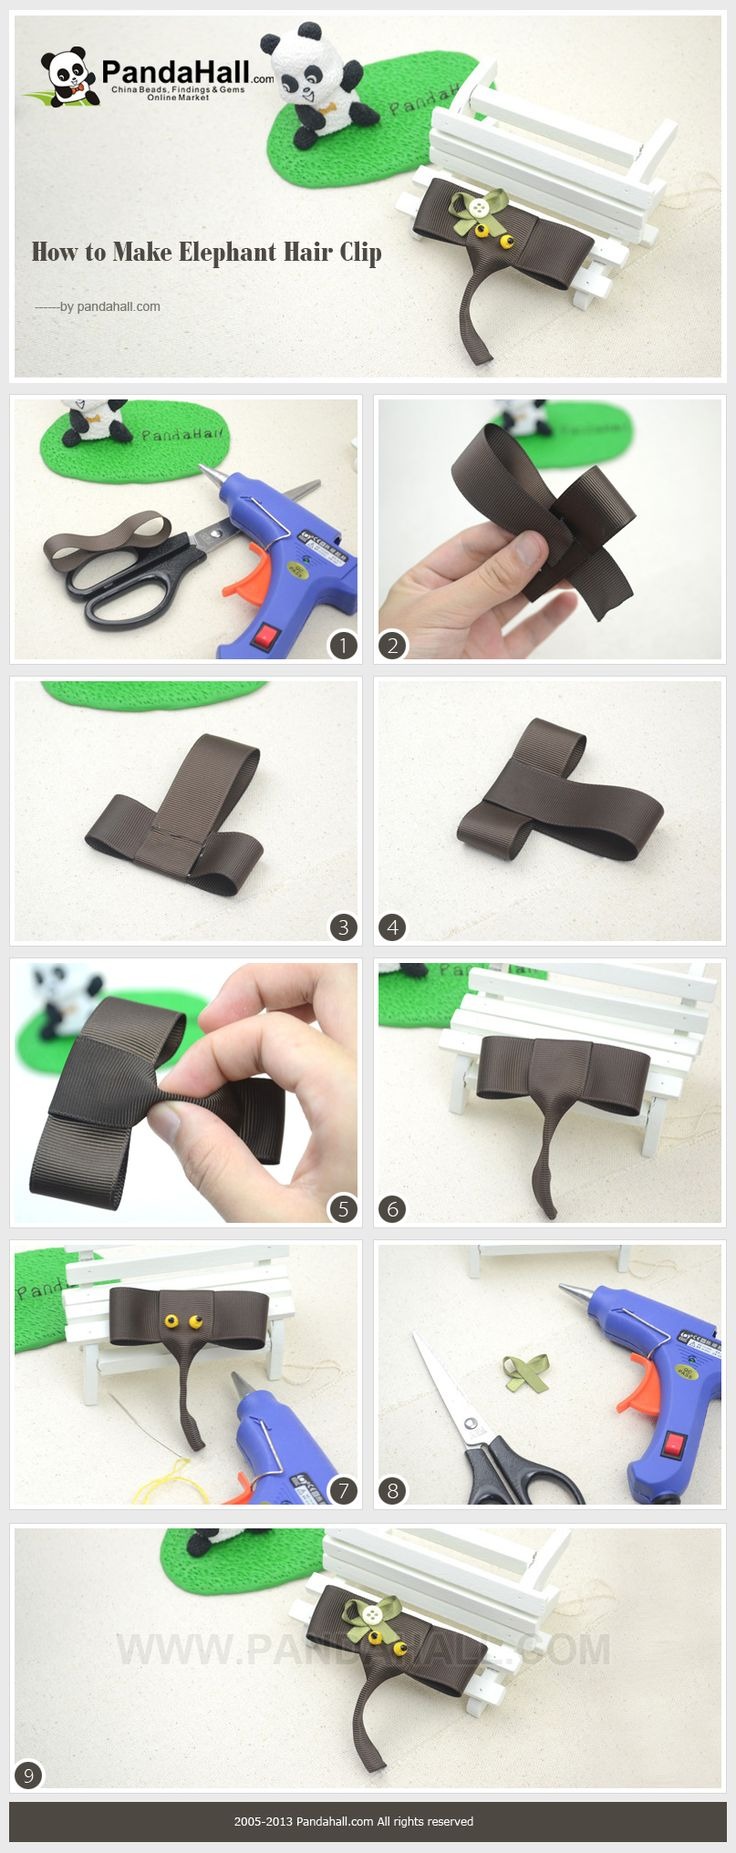 How to Make Elephant Hair Clip